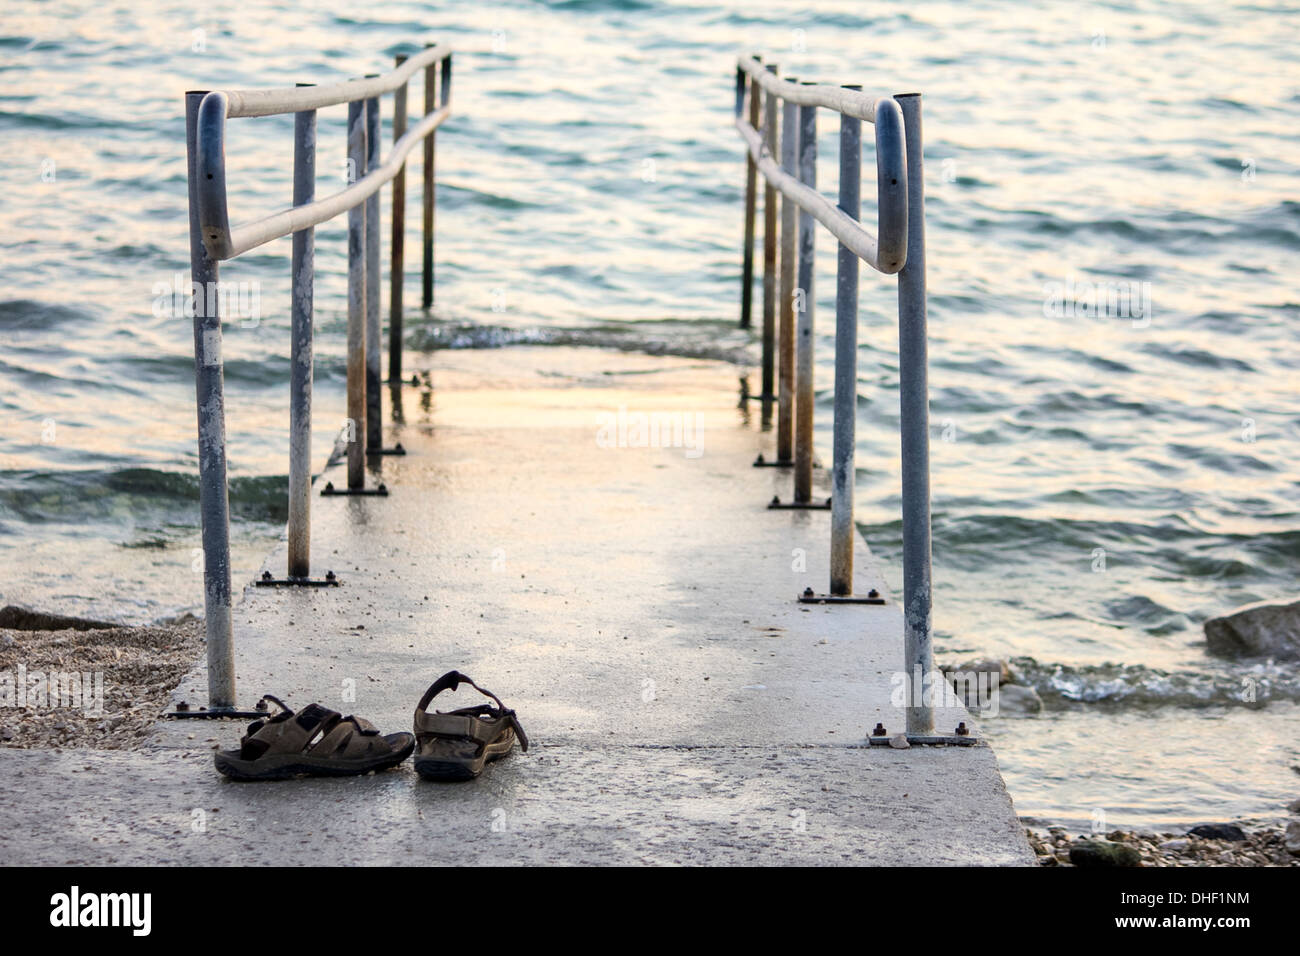 Sandals on disability access to the sea - Stock Image